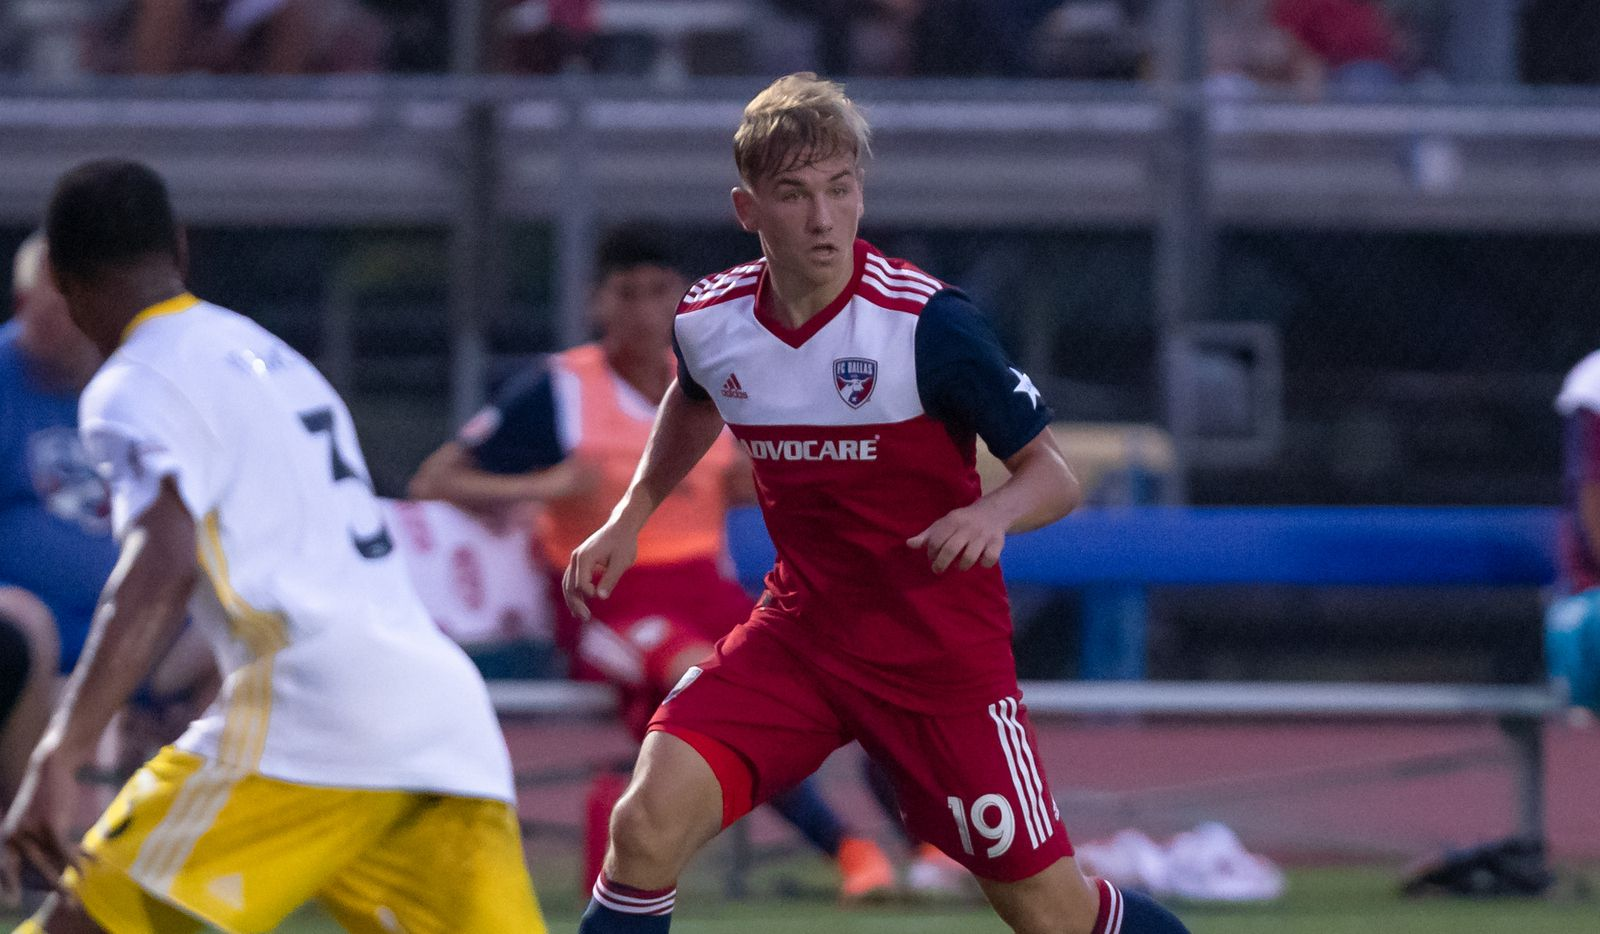 DALLAS, TX - JUNE 19: Paxton Pomykal in action during the Lamar Hunt U.S. Open Cup round of 16 soccer game between FC Dallas and New Mexico United on June 19, 2019 at Westcott Field in Dallas, Texas.  (Photo by Matthew Visinsky)